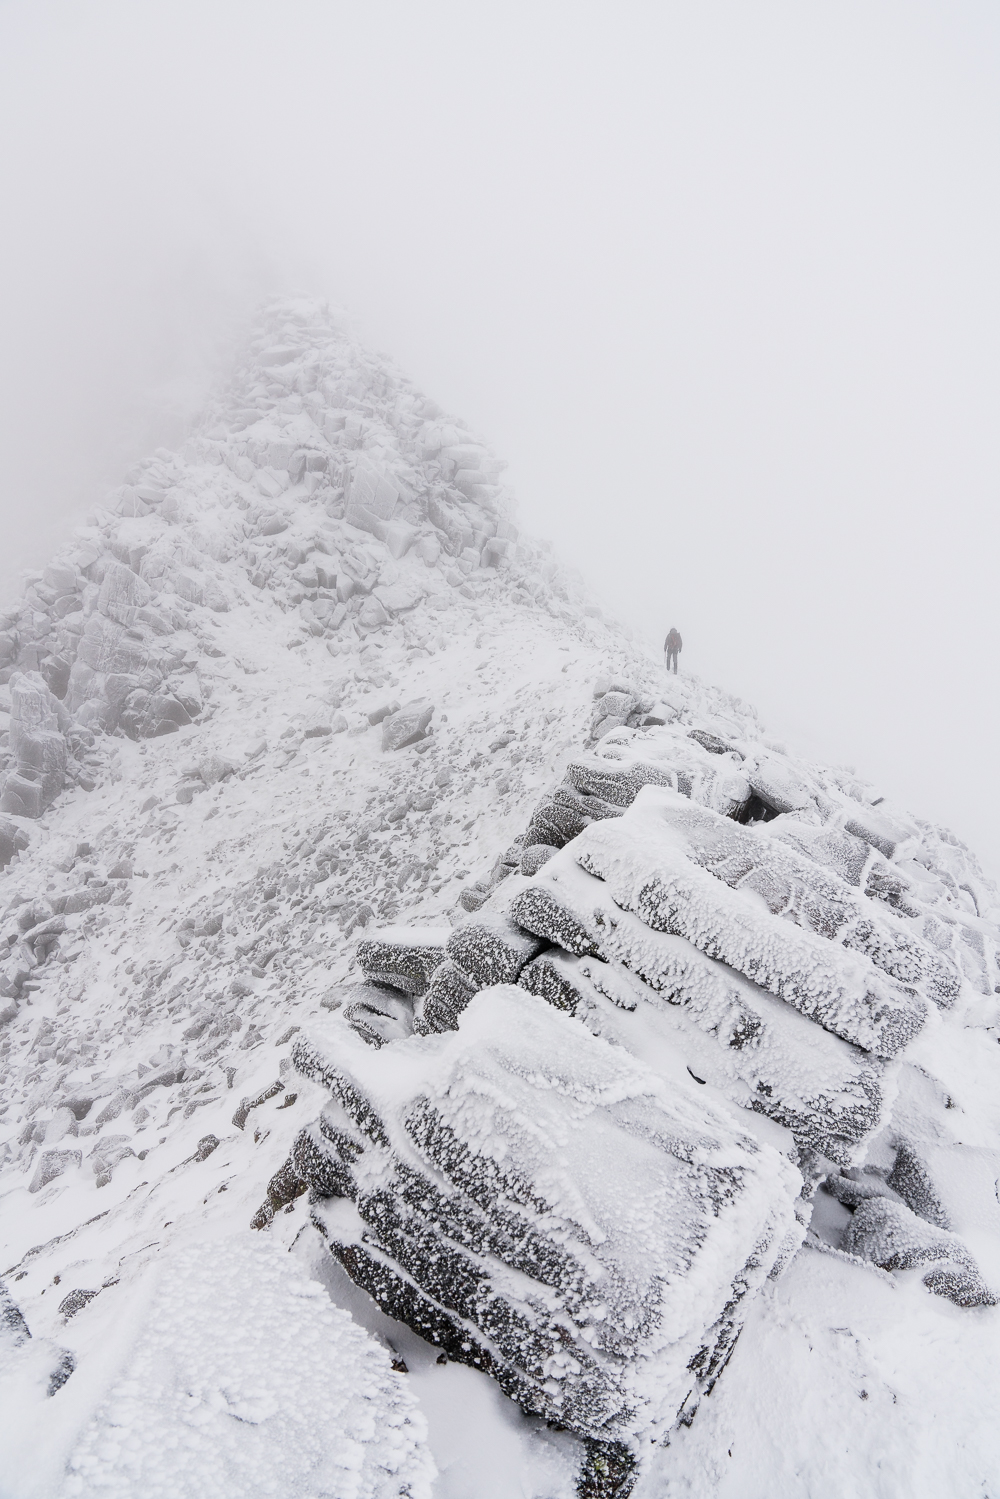 This Photo is from the Cairngorms. I don't think I've ever had great conditions here, and this is as close to a decent shot of the ridge as I've come. Suddenly, the angles slid into place, 'landscape' photography as movement.